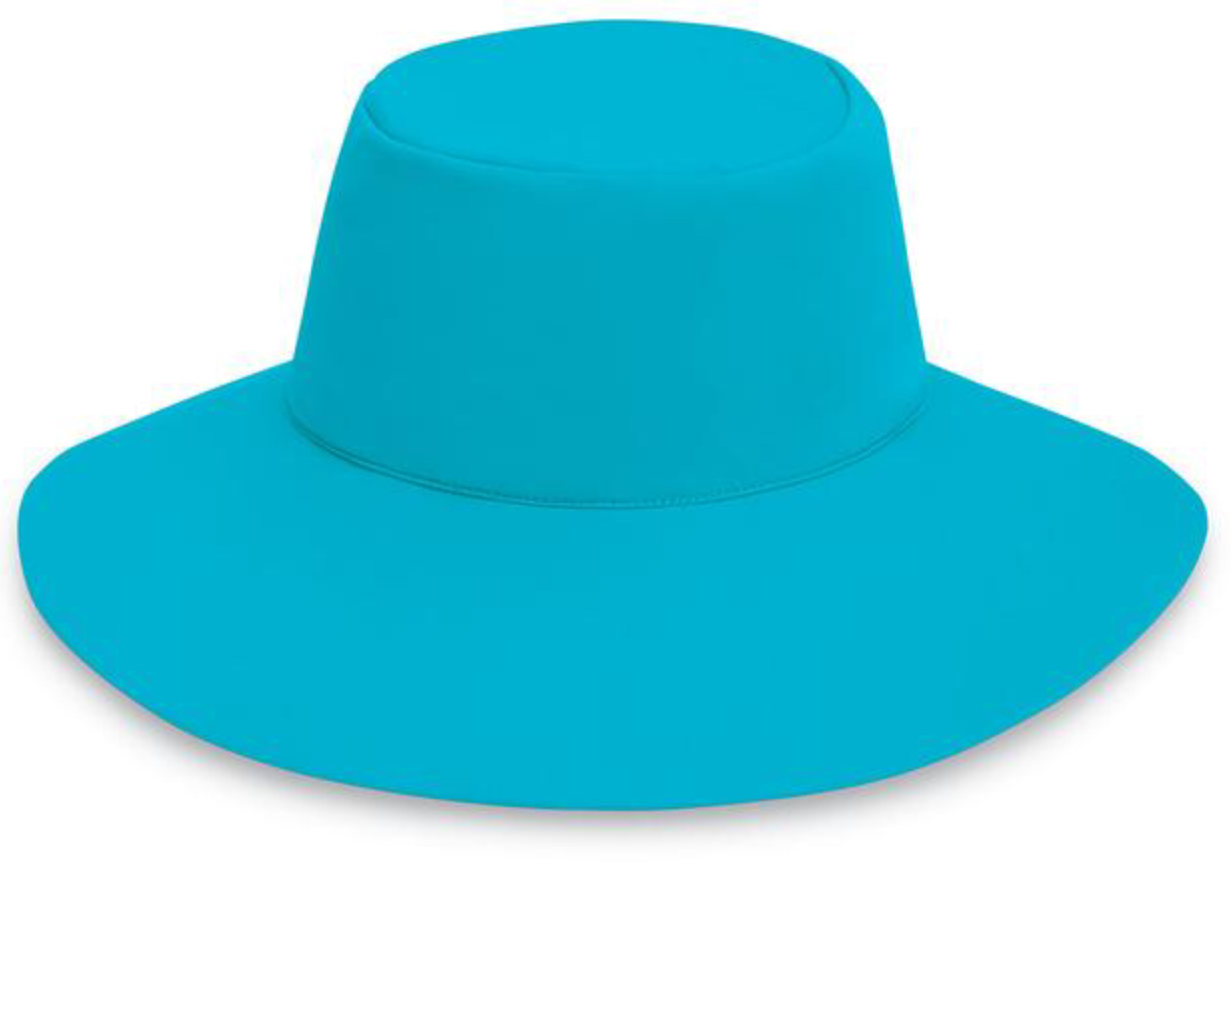 Under $50 - While I love a chic straw hat, the weave might allow sun through the tiny gaps. Why not try a lightweight UPF hat from Aussie-inspired Wallaroo, which earned the Skin Cancer Foundation's Seal of Recommendation.Tip: before buying any hat, try it on outside to see if rays are penetrating.